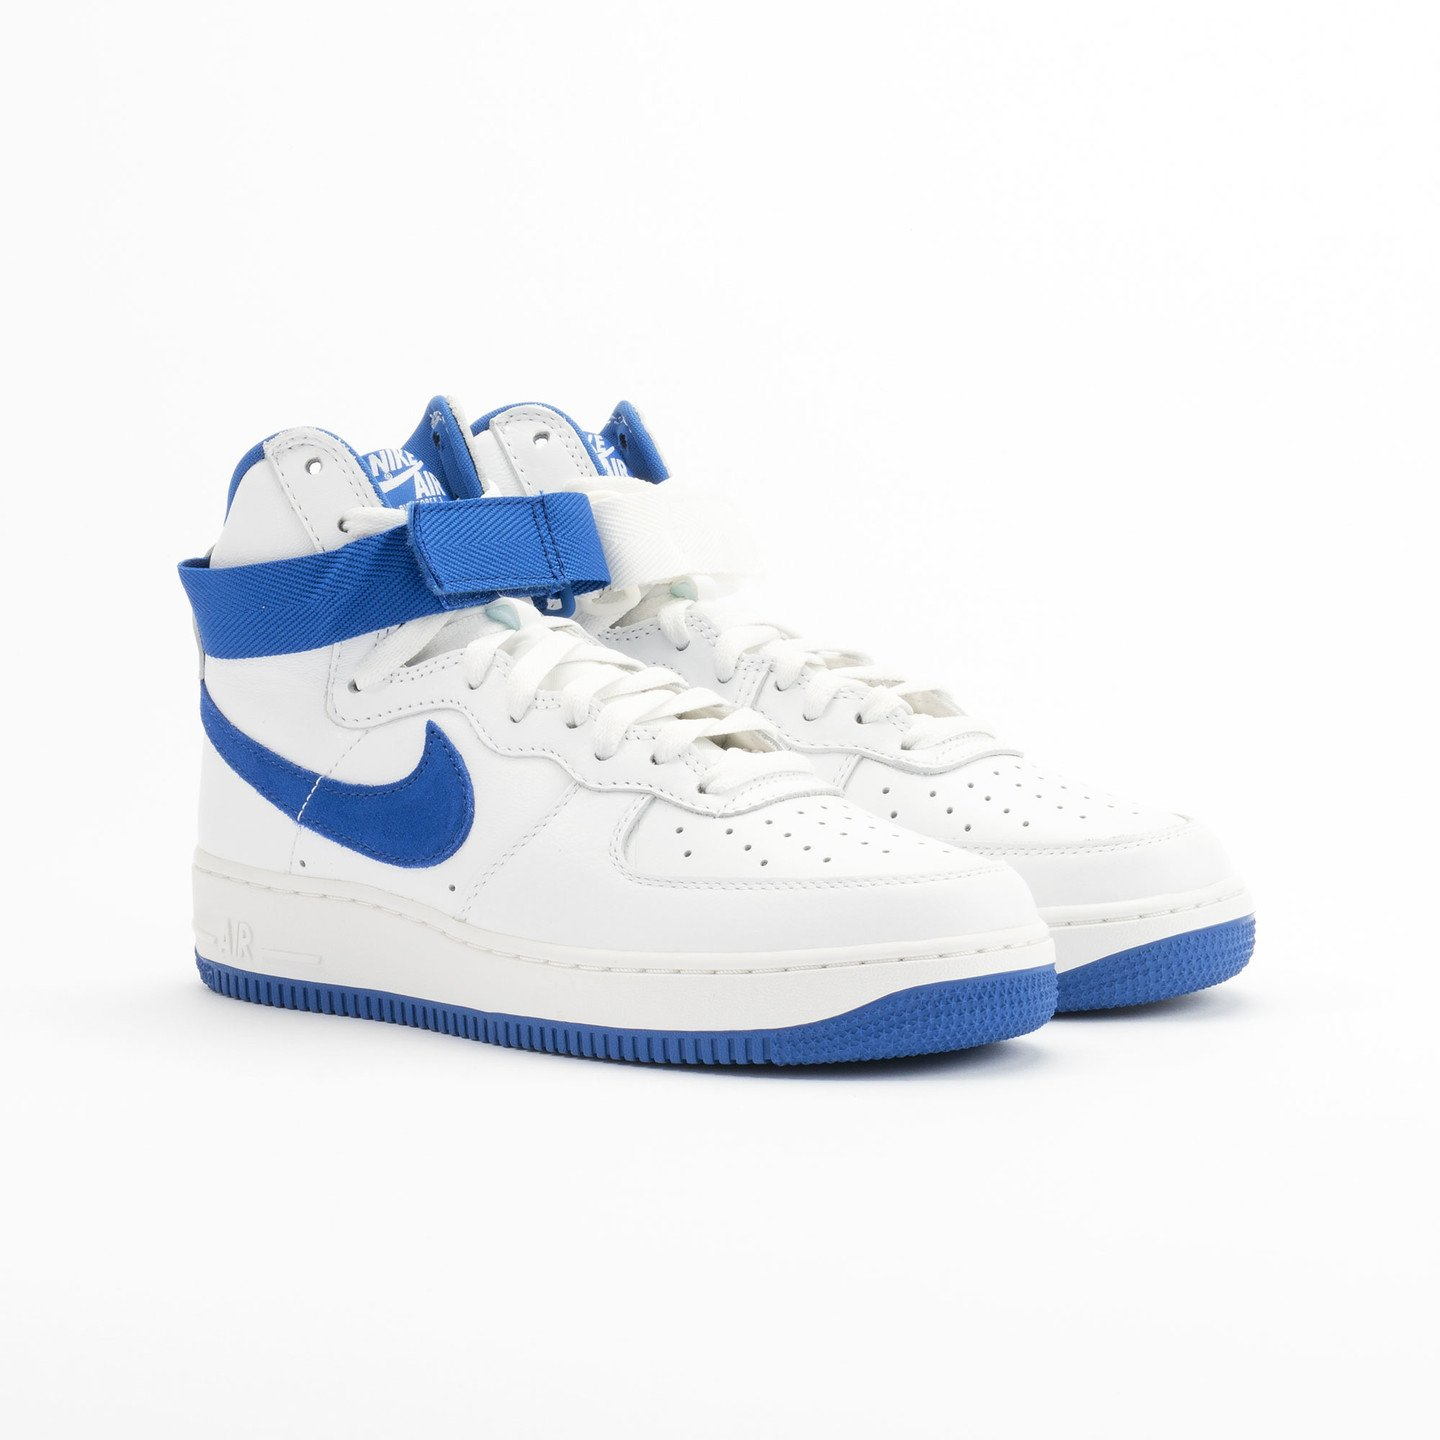 Nike Air Force 1 Hi Retro OG QS Summit White - Game Royal 743546-103-47